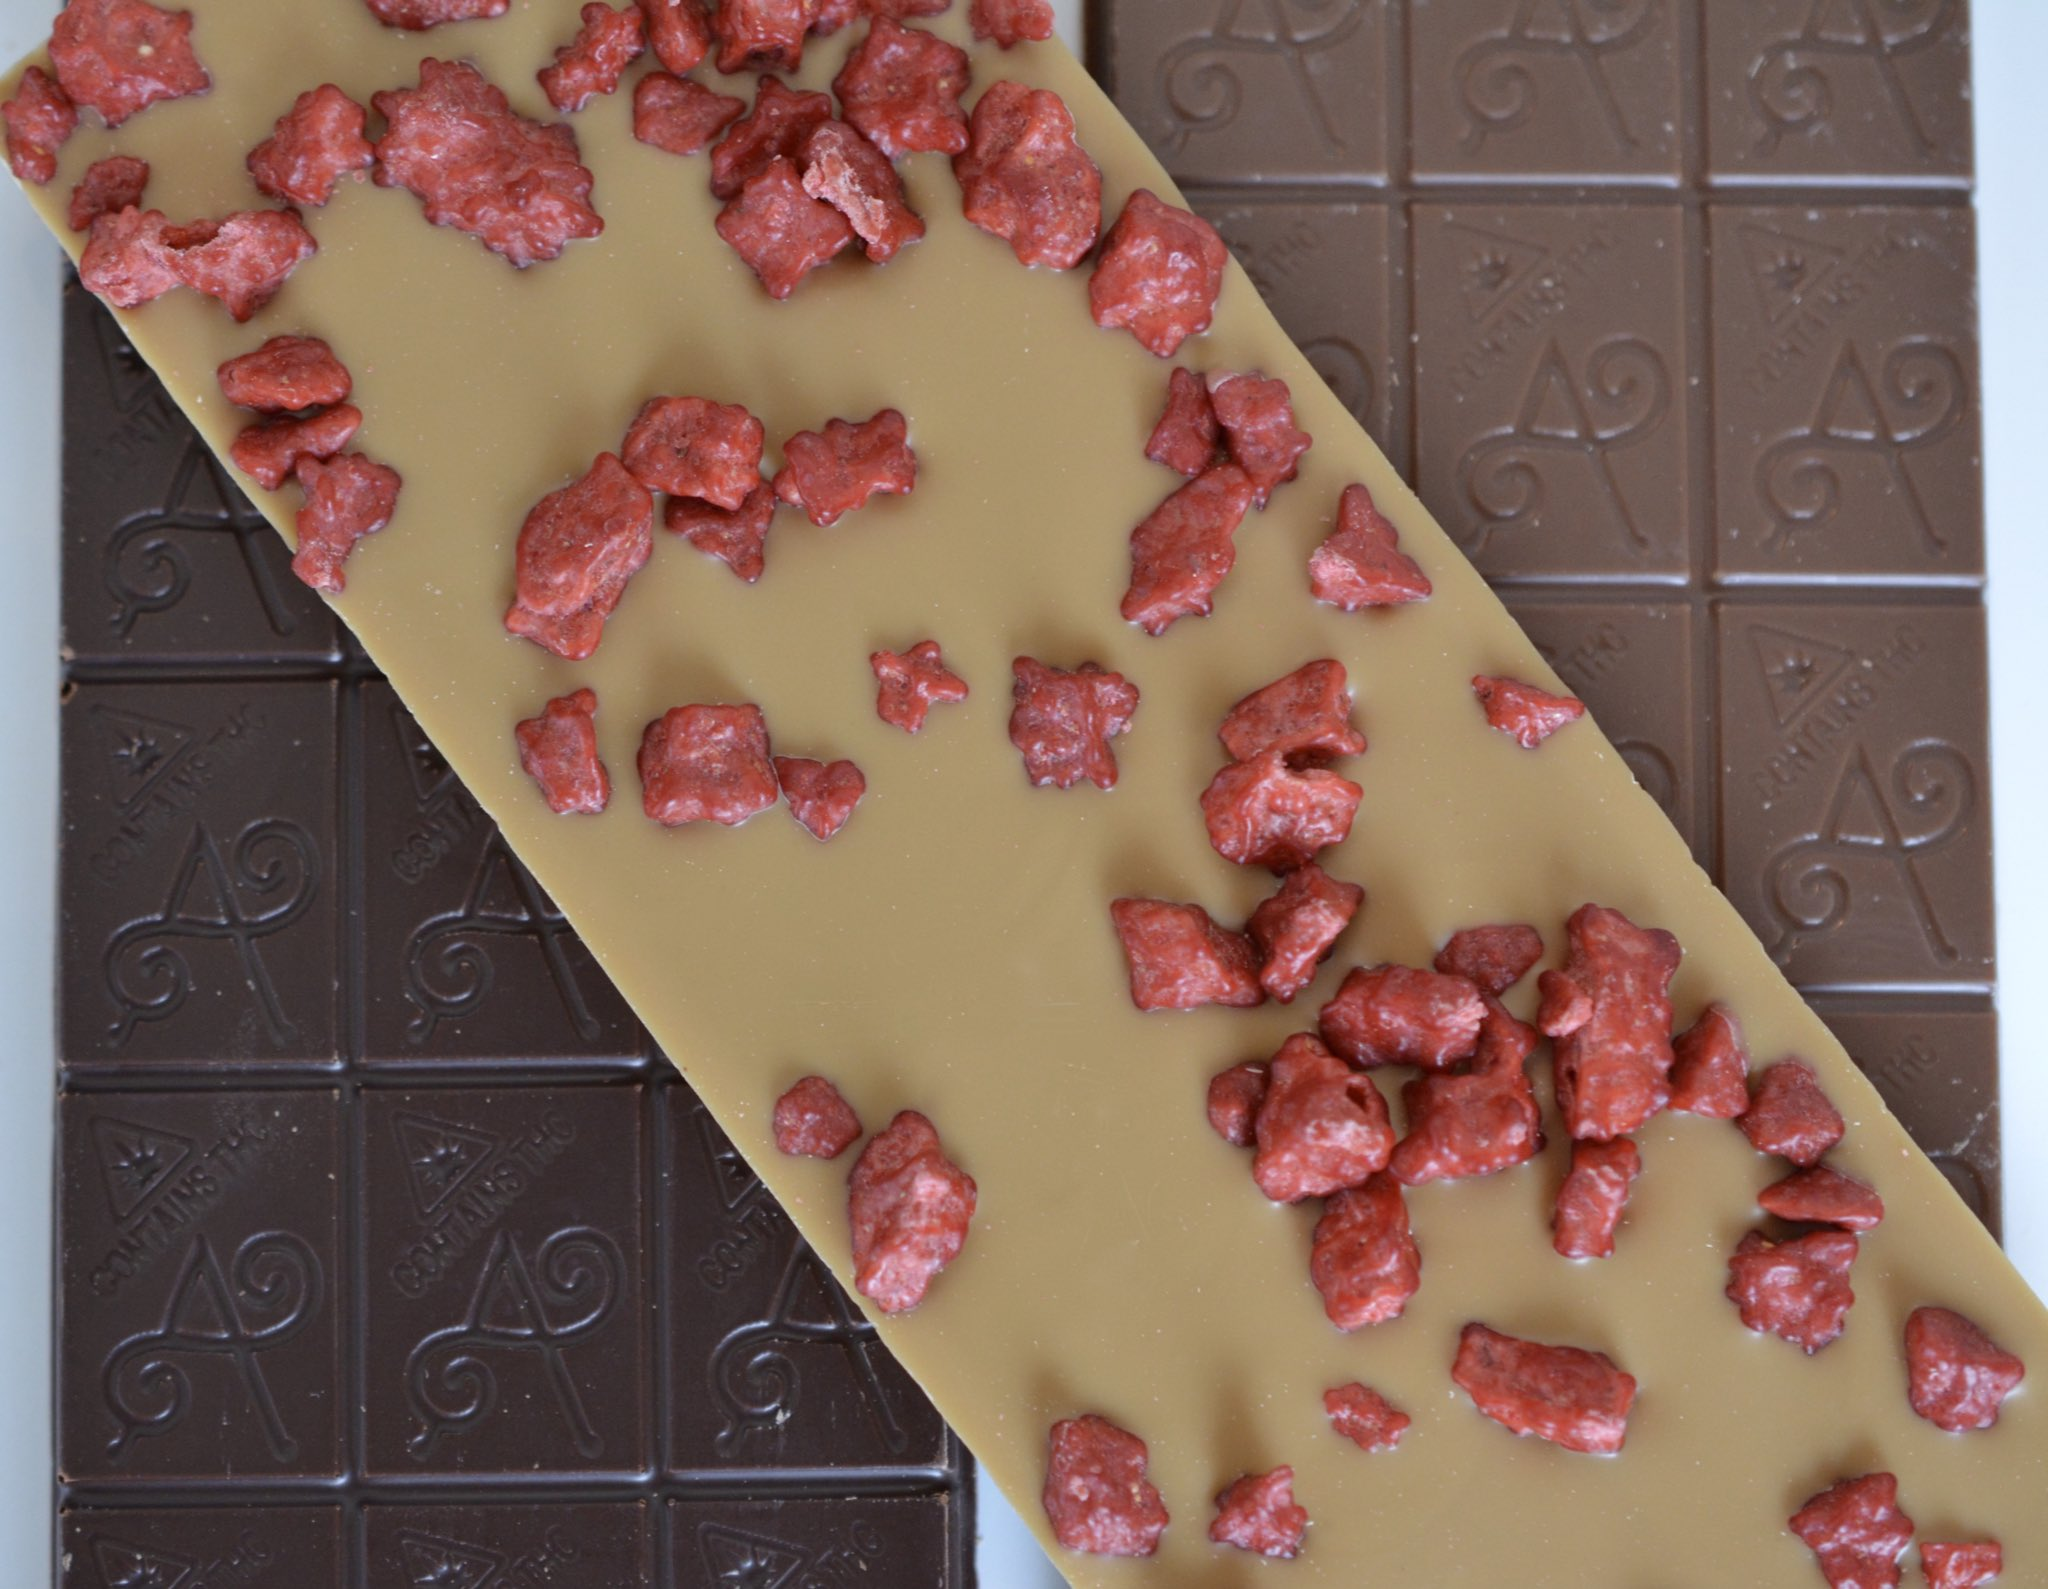 apostrophe premium strawberry blonde chocolate bar edible by nature's remedy